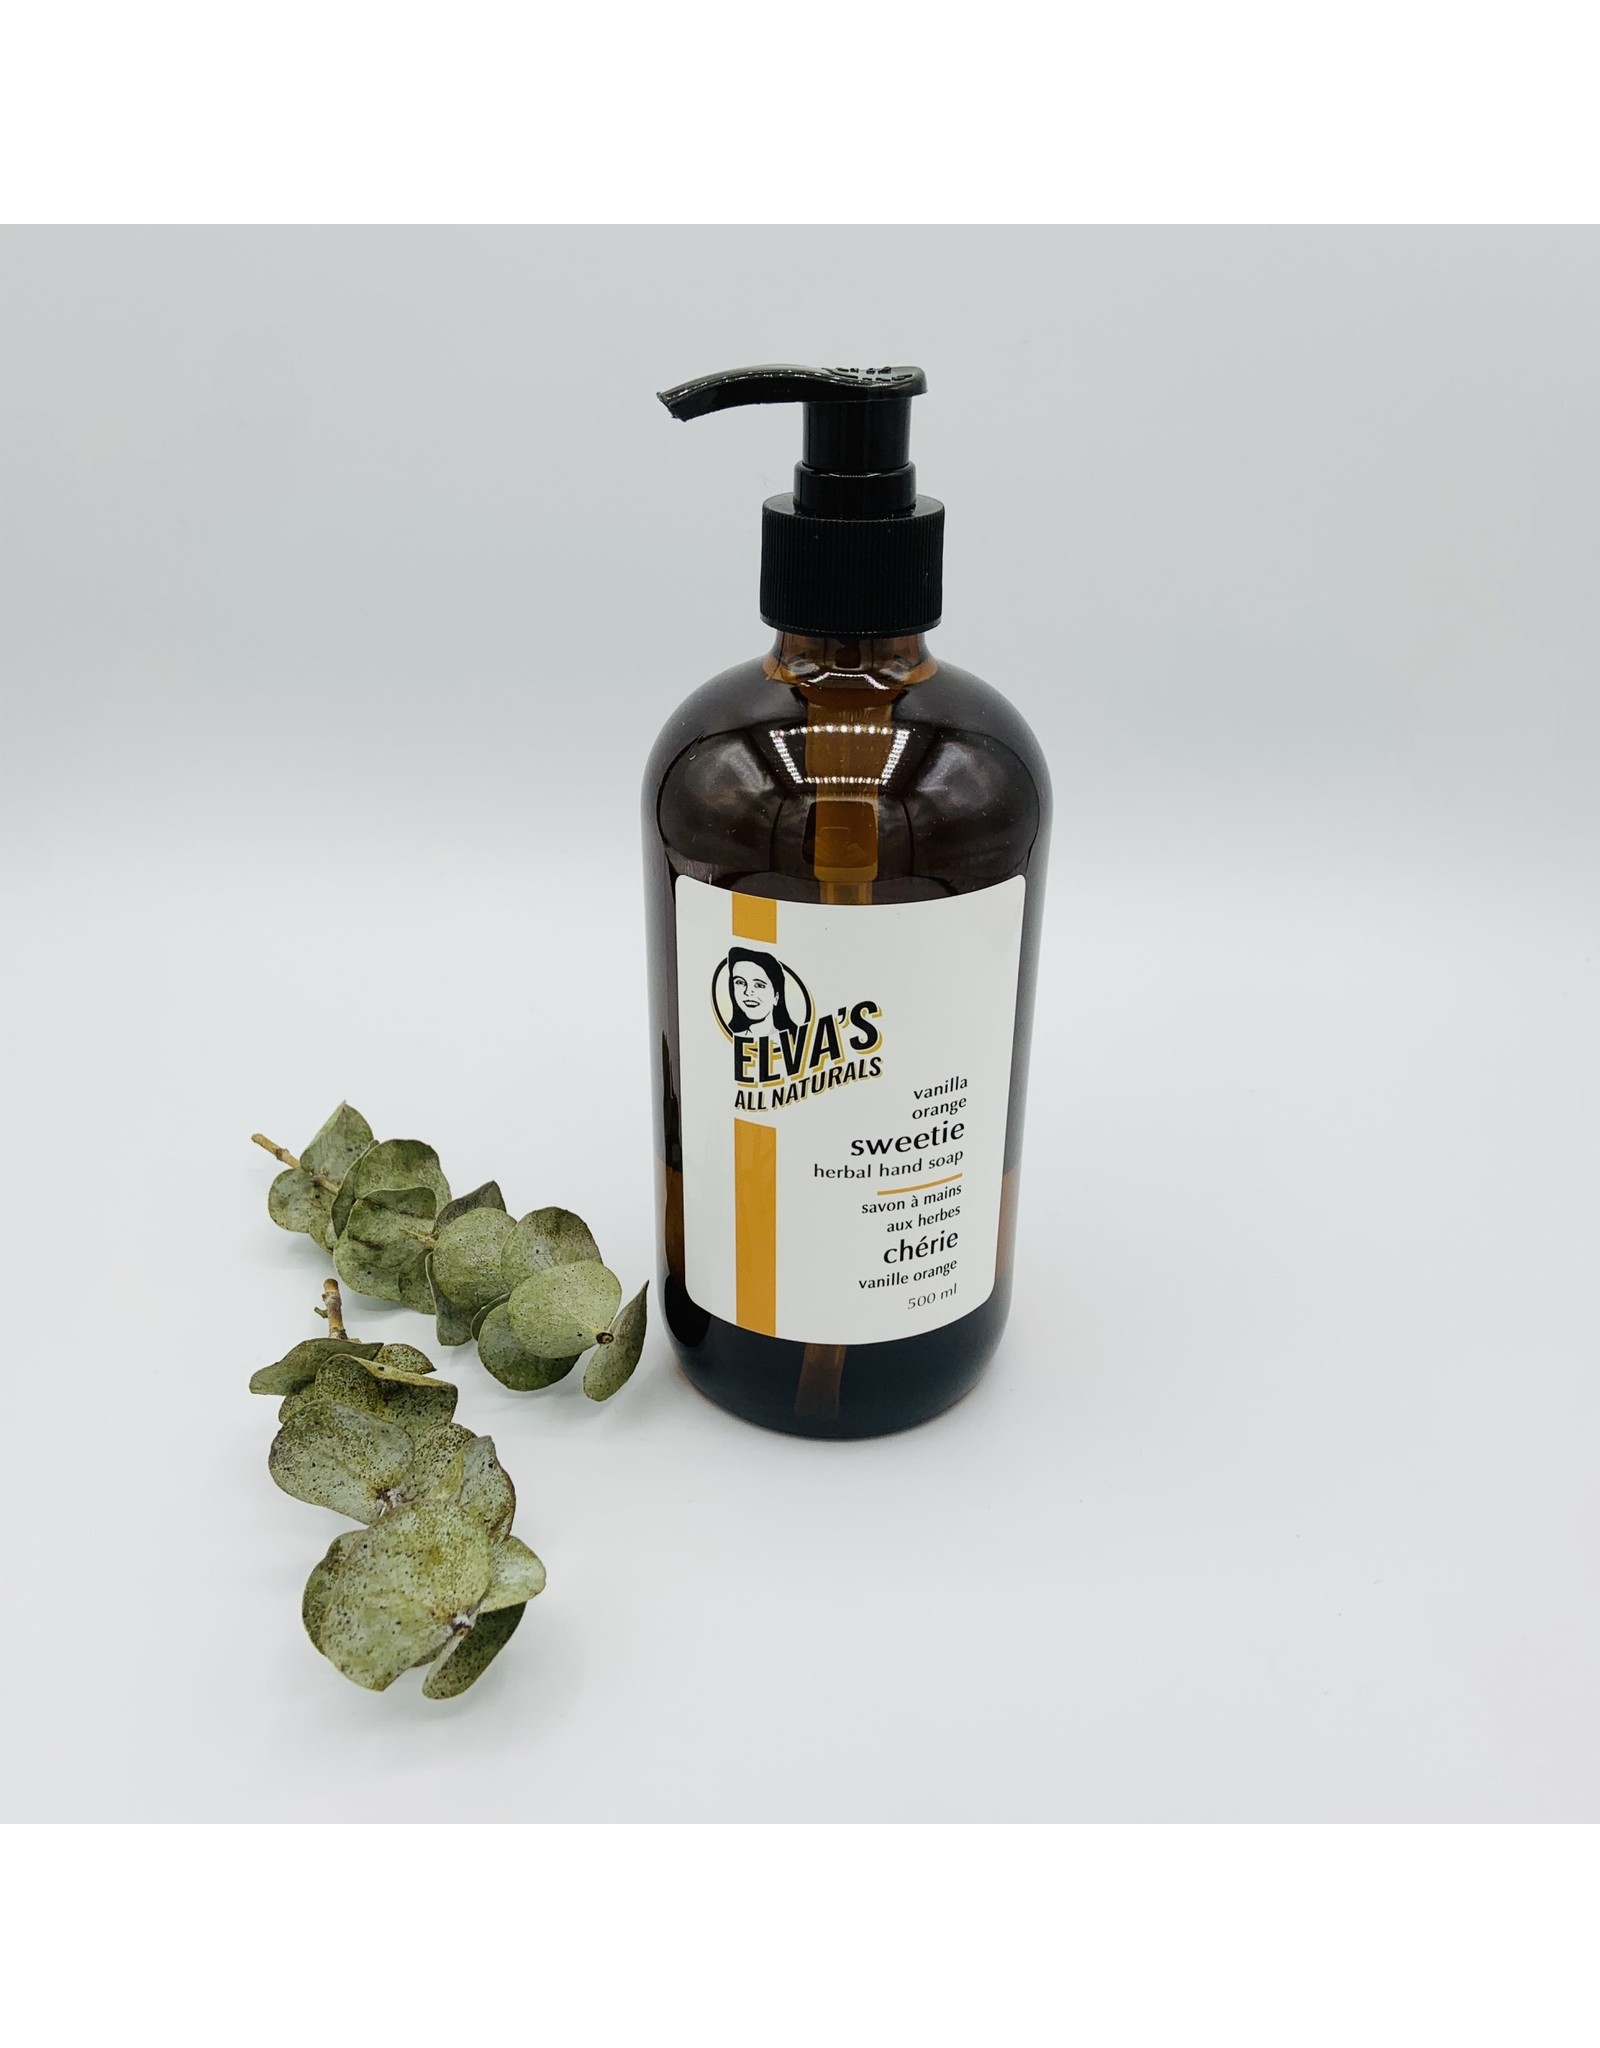 Elva's All Naturals Herbal Hand Soap by Elva's All Naturals